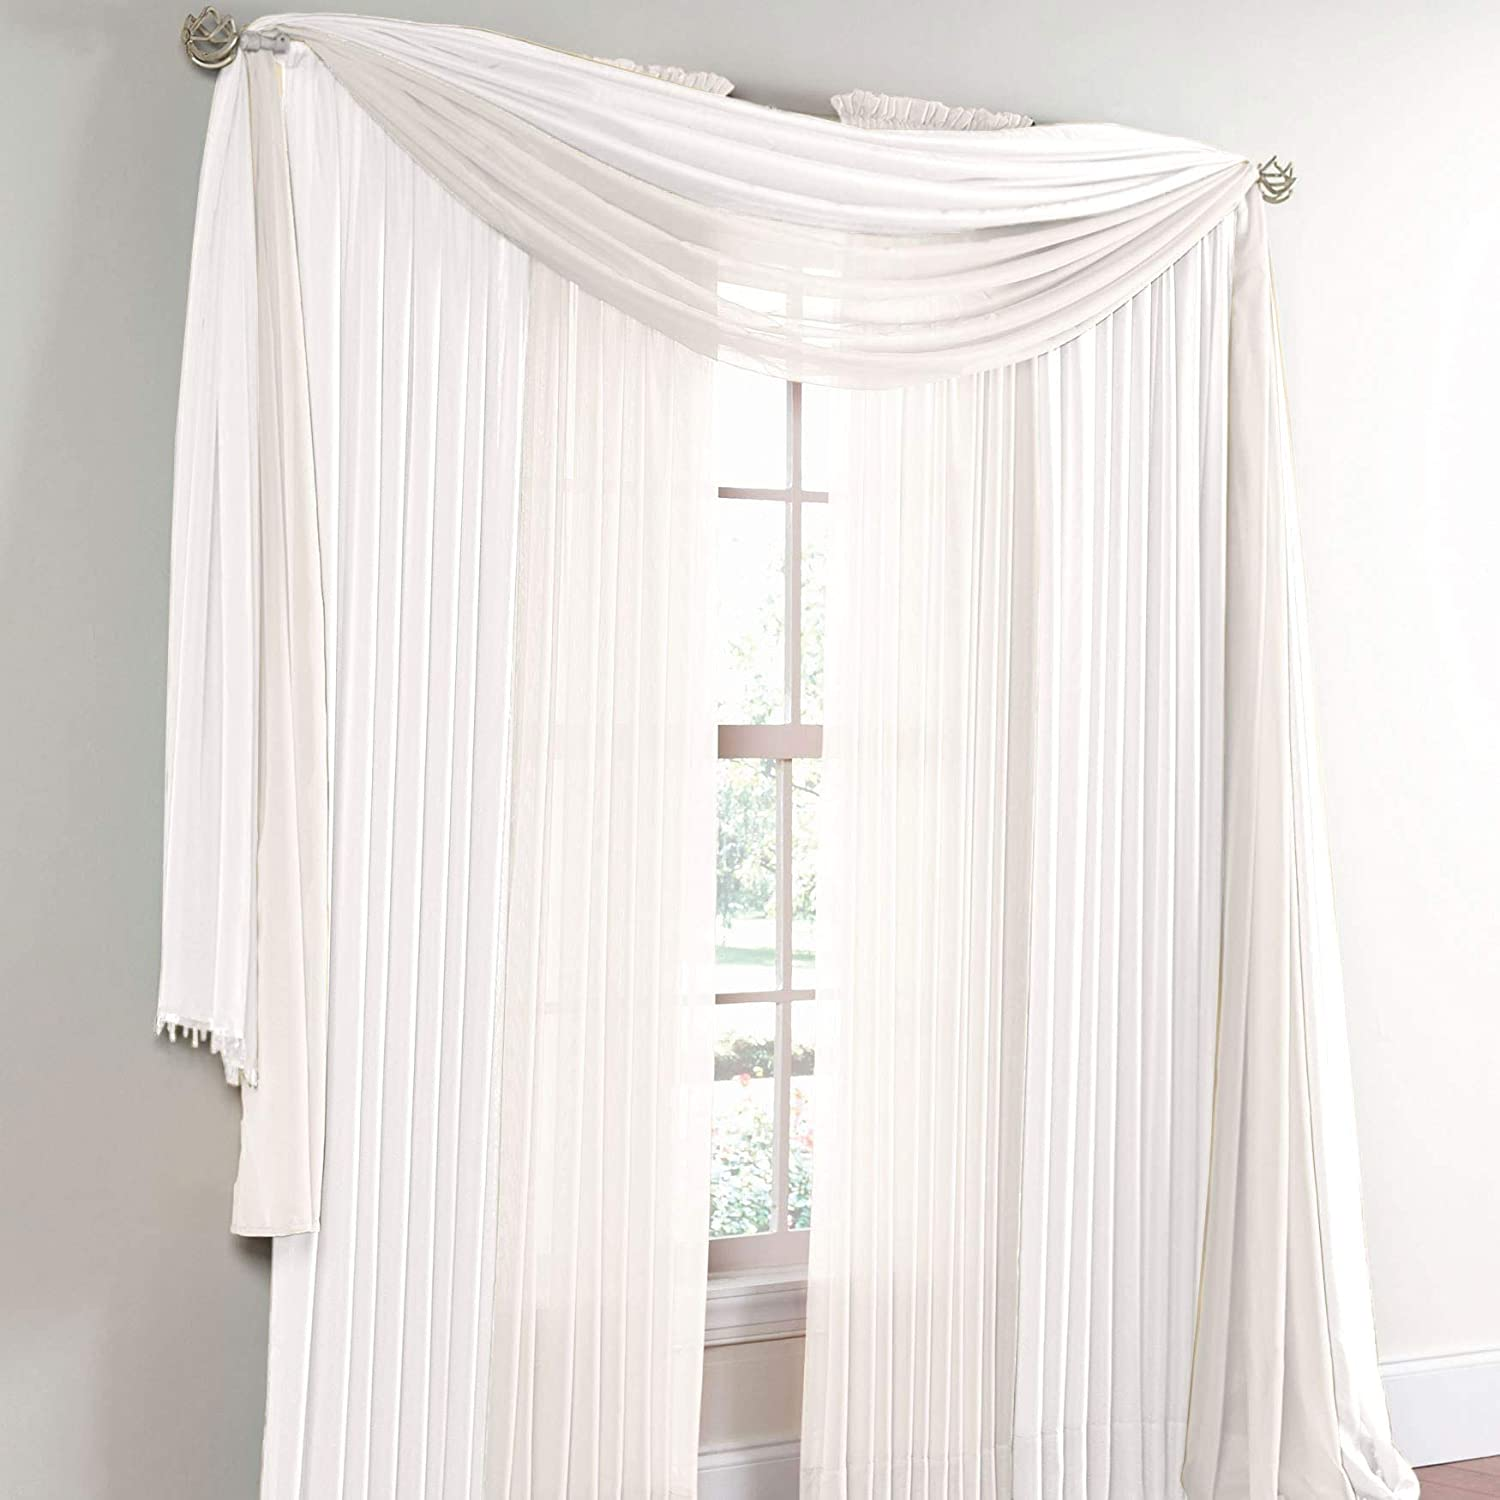 BrylaneHome Sheer Voile Scarf Valance - 40I W 144Il, White